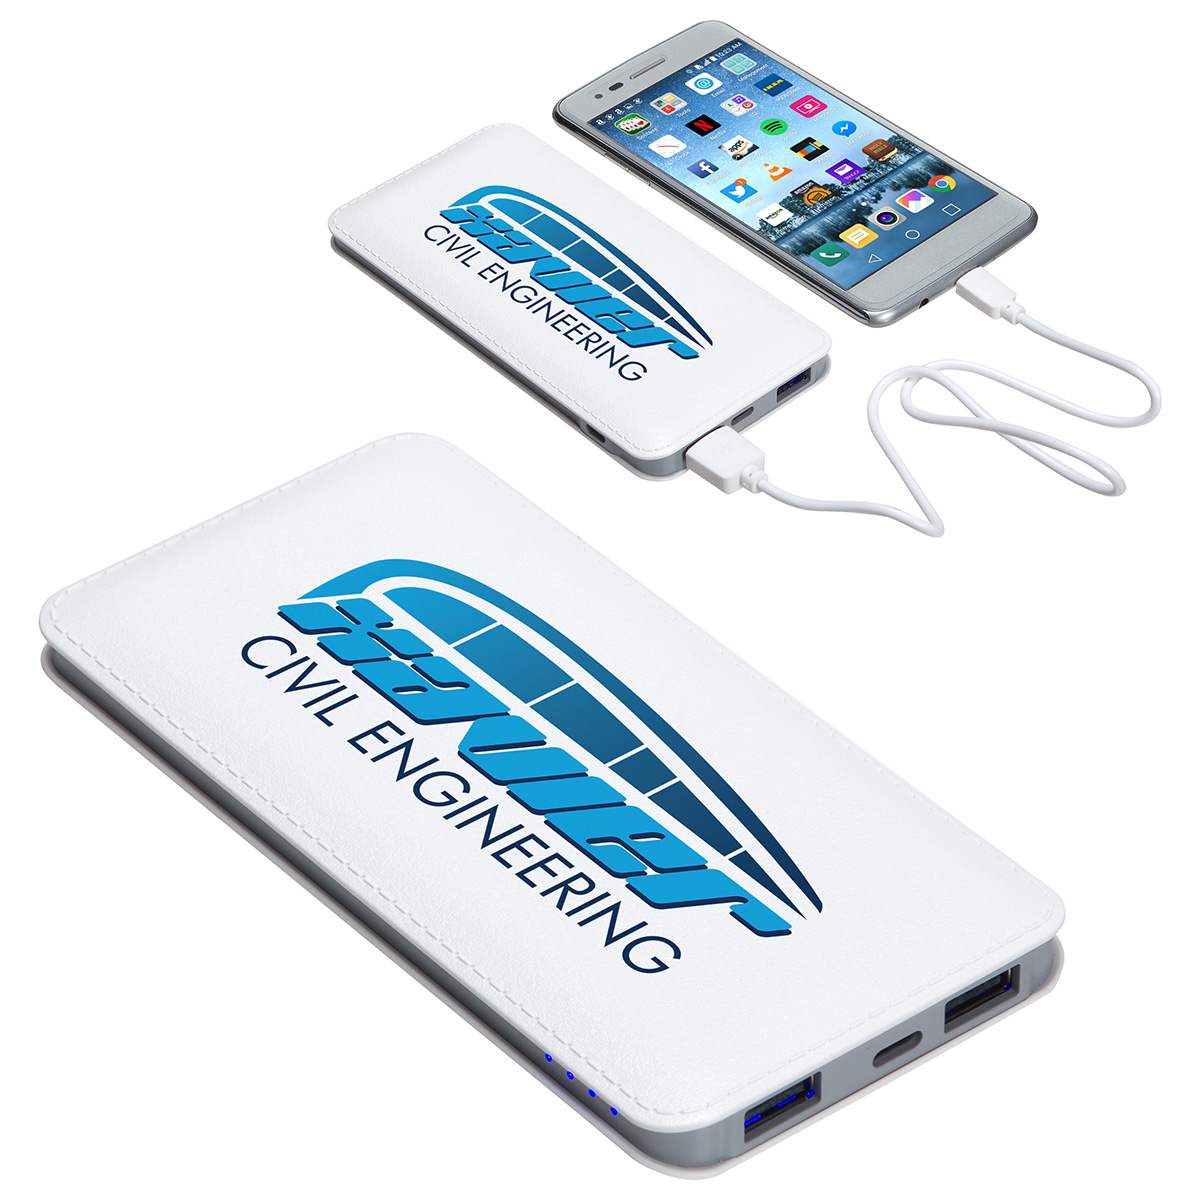 Ambassador 10000mAh Leather Power Bank, EPB-AB18, 1 Colour Imprint